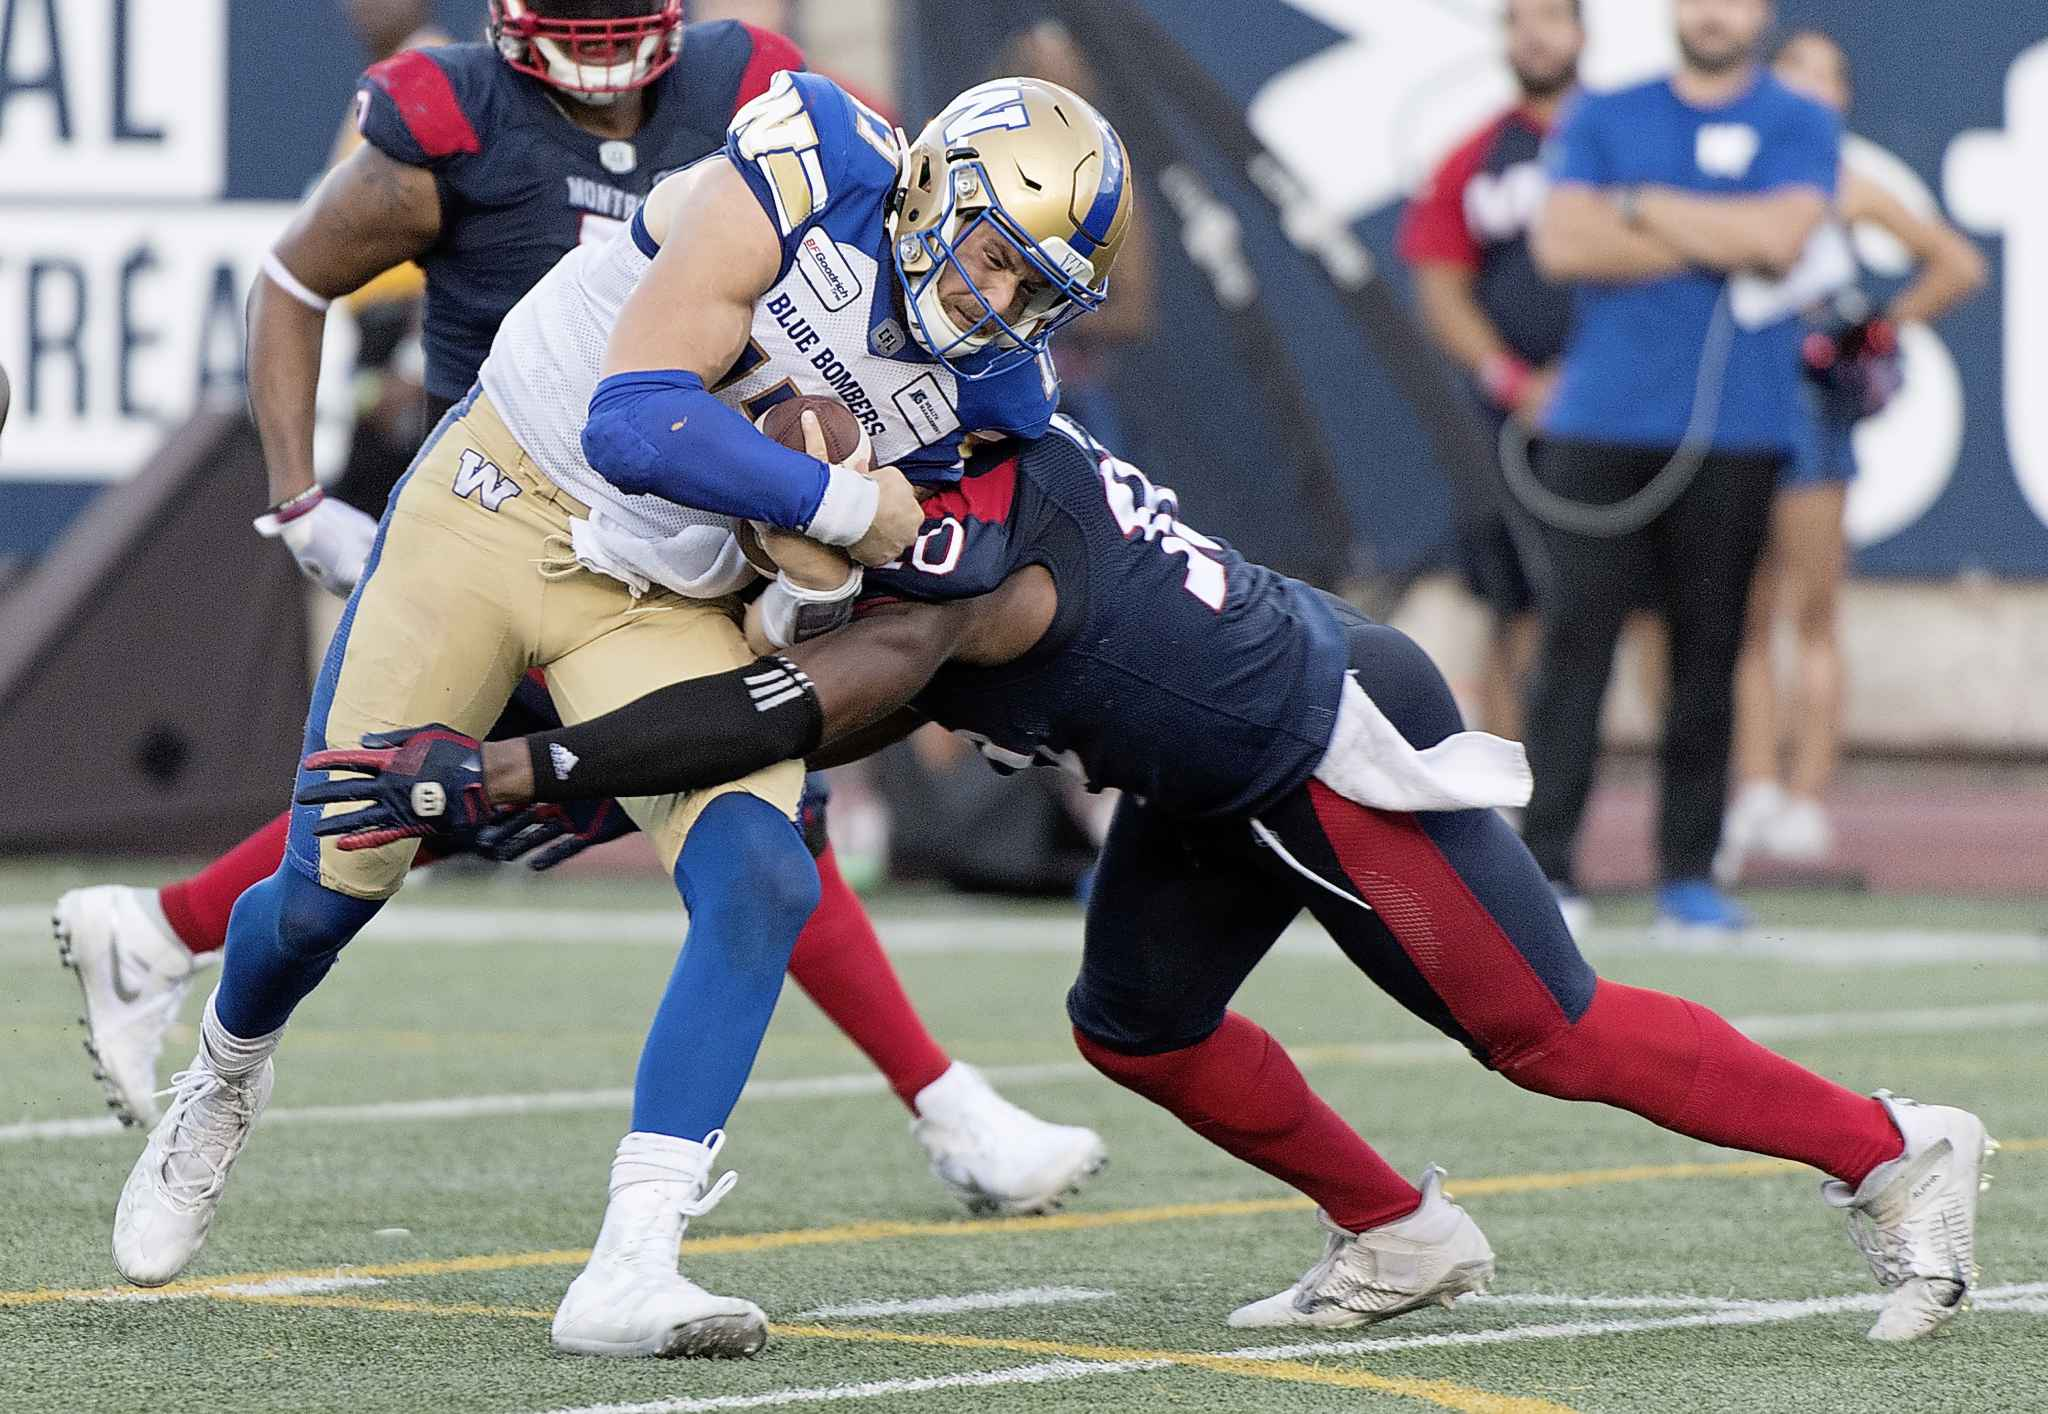 Winnipeg Blue Bombers quarterback Chris Streveler, left, is tackled by Montreal Alouettes linebacker Henoc Muamba during the Alouettes' come-from-behind win against the Bombers in September.